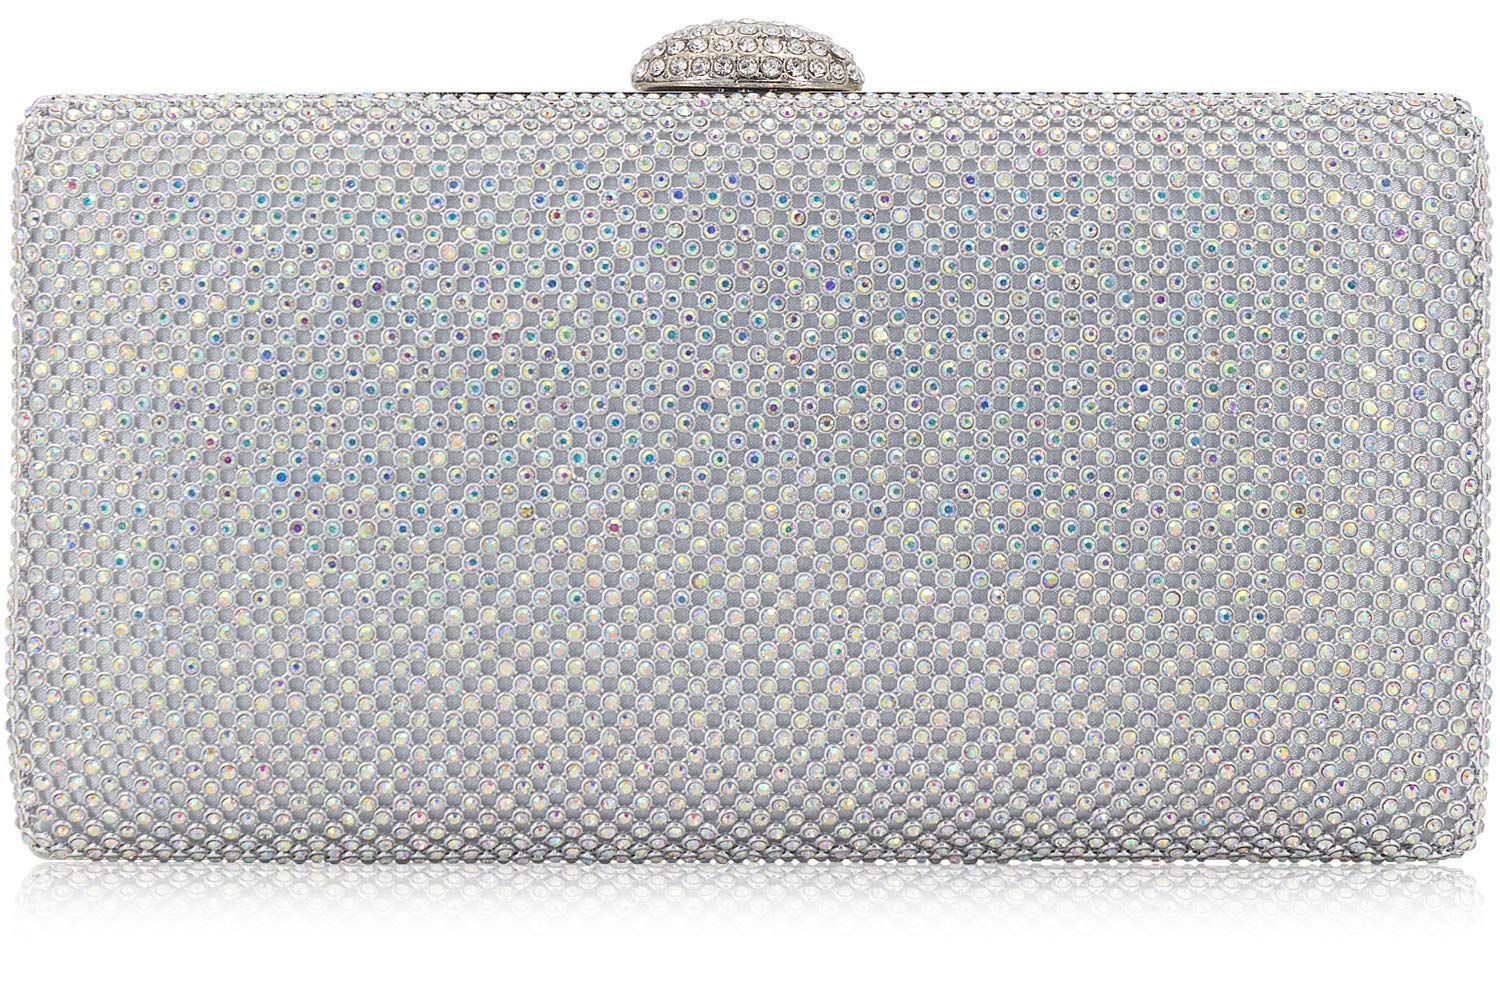 Dexmay Large Rhinestone Crystal Clutch Evening Bag for Cocktail Prom Party Women Clutch Purse AB Silver